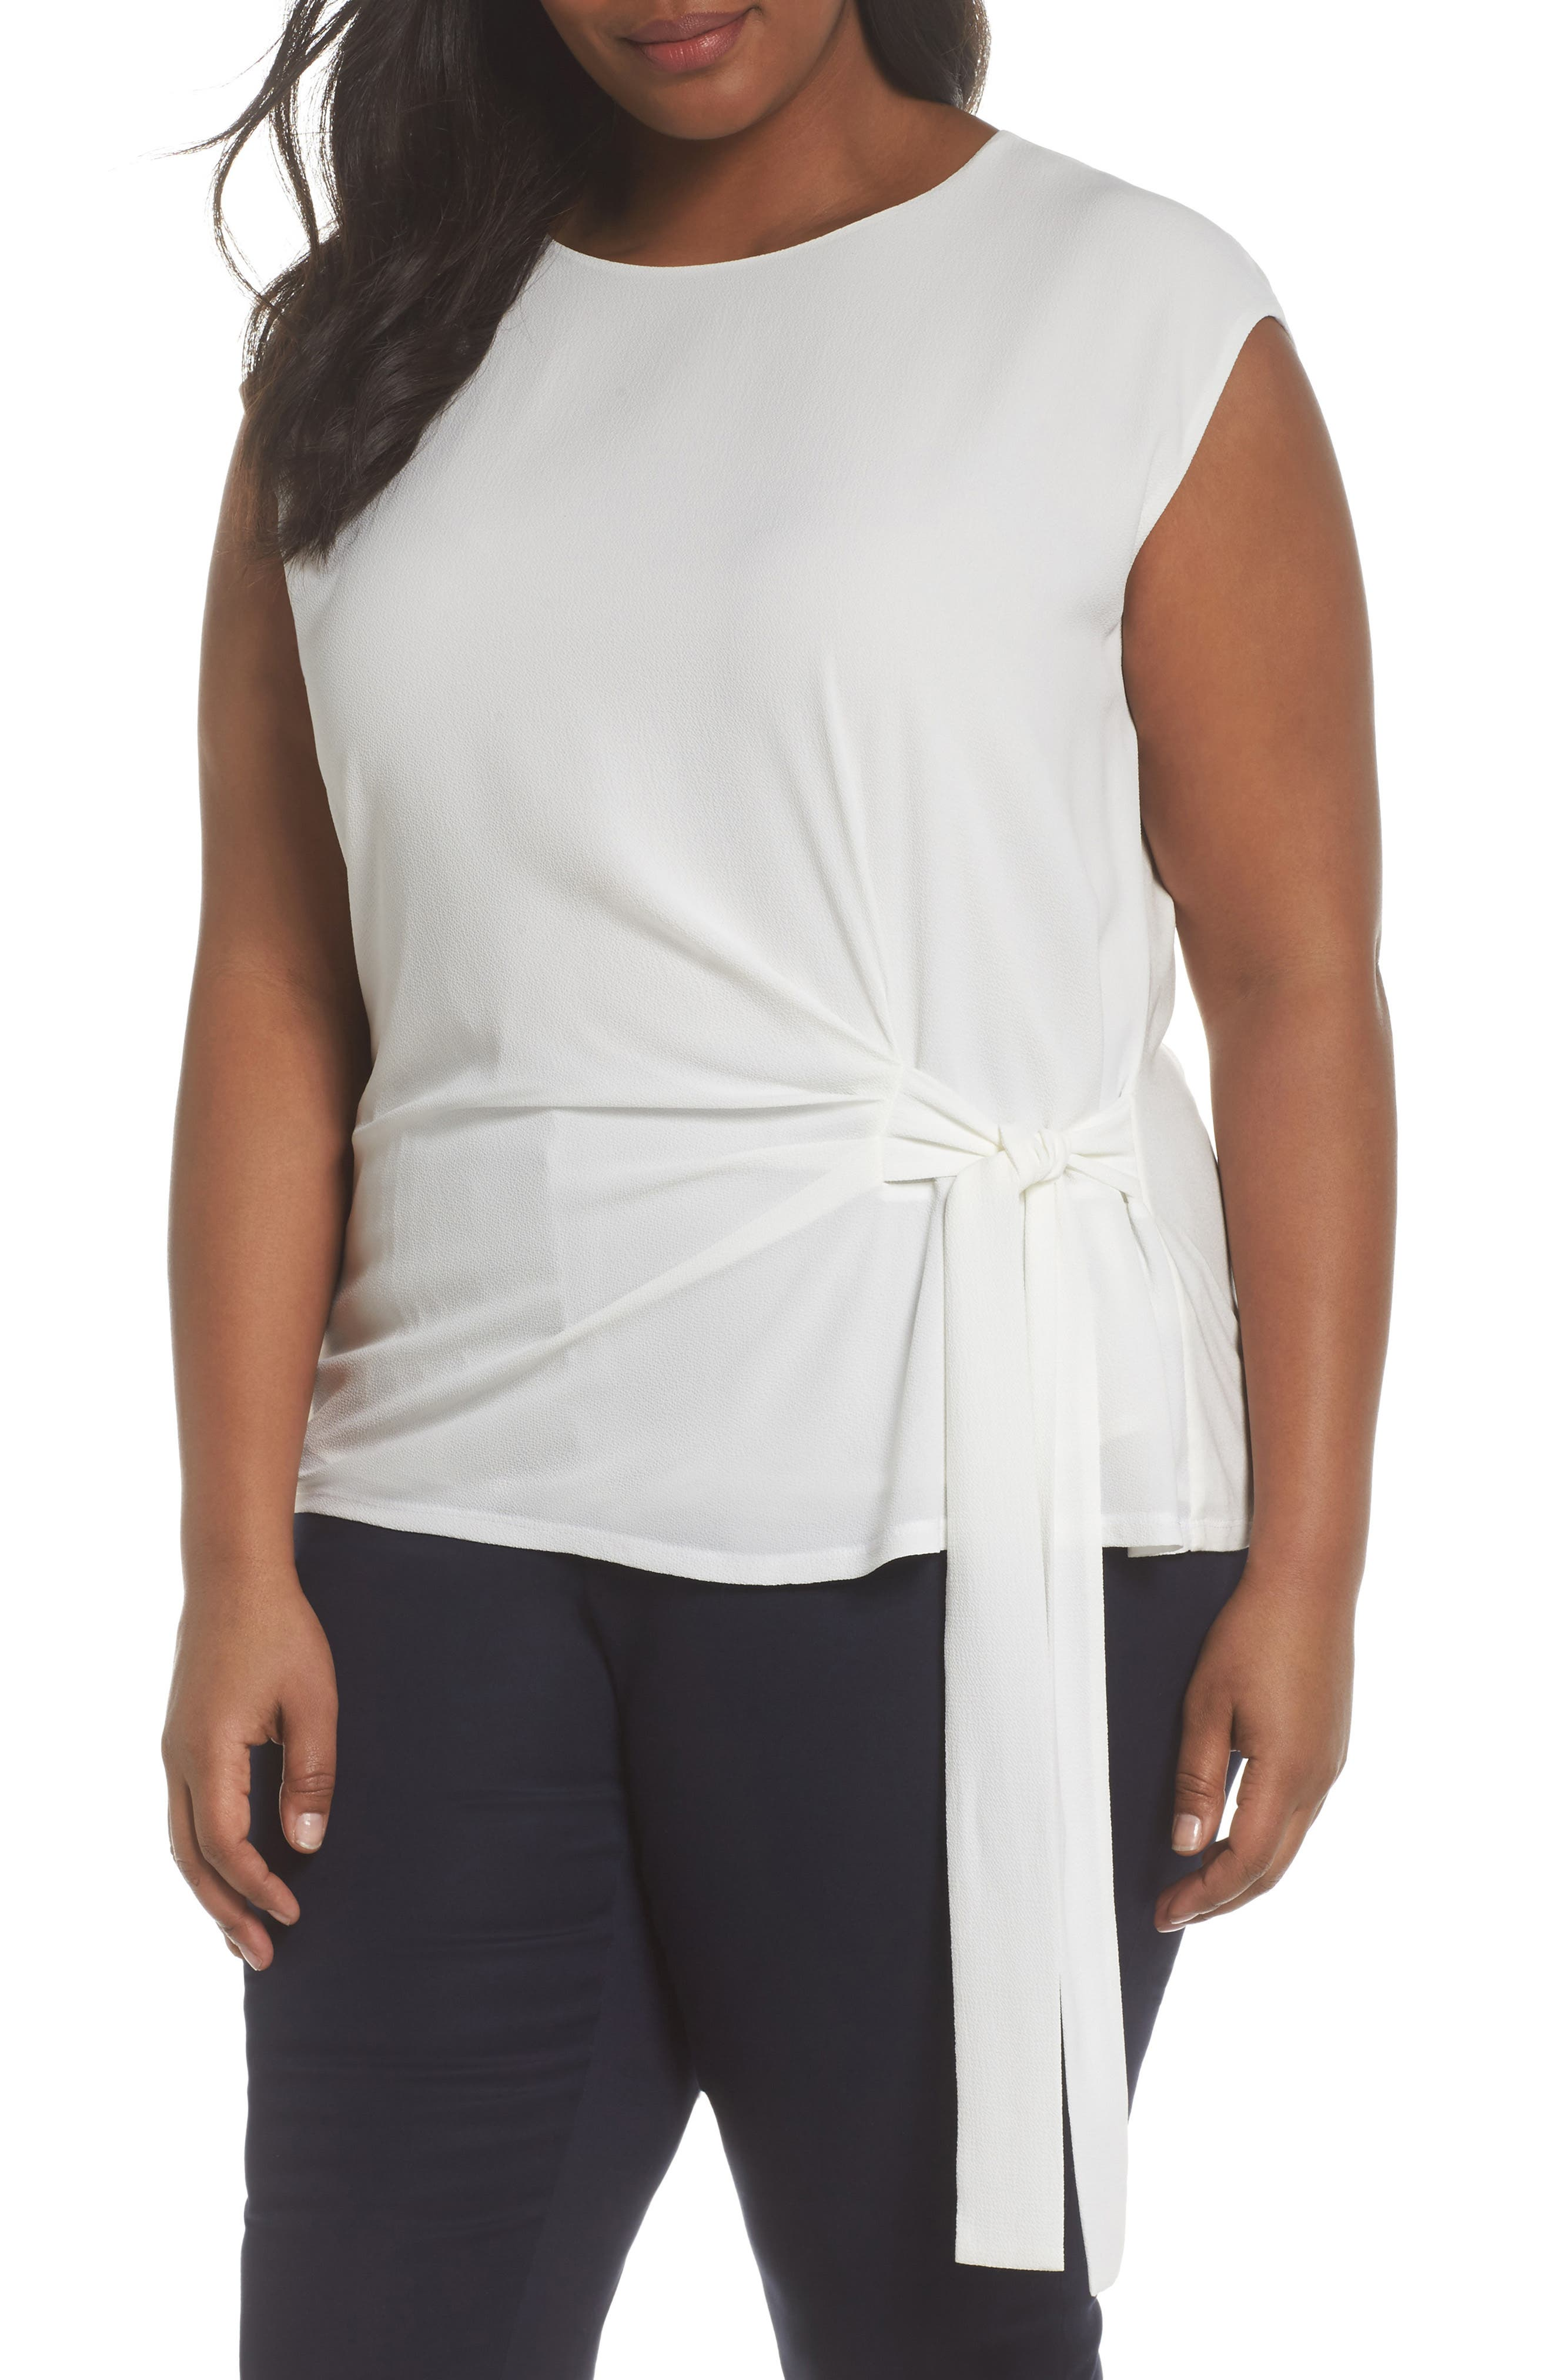 Vince Camuto Side Tie Mixed Media Top (Plus Size)